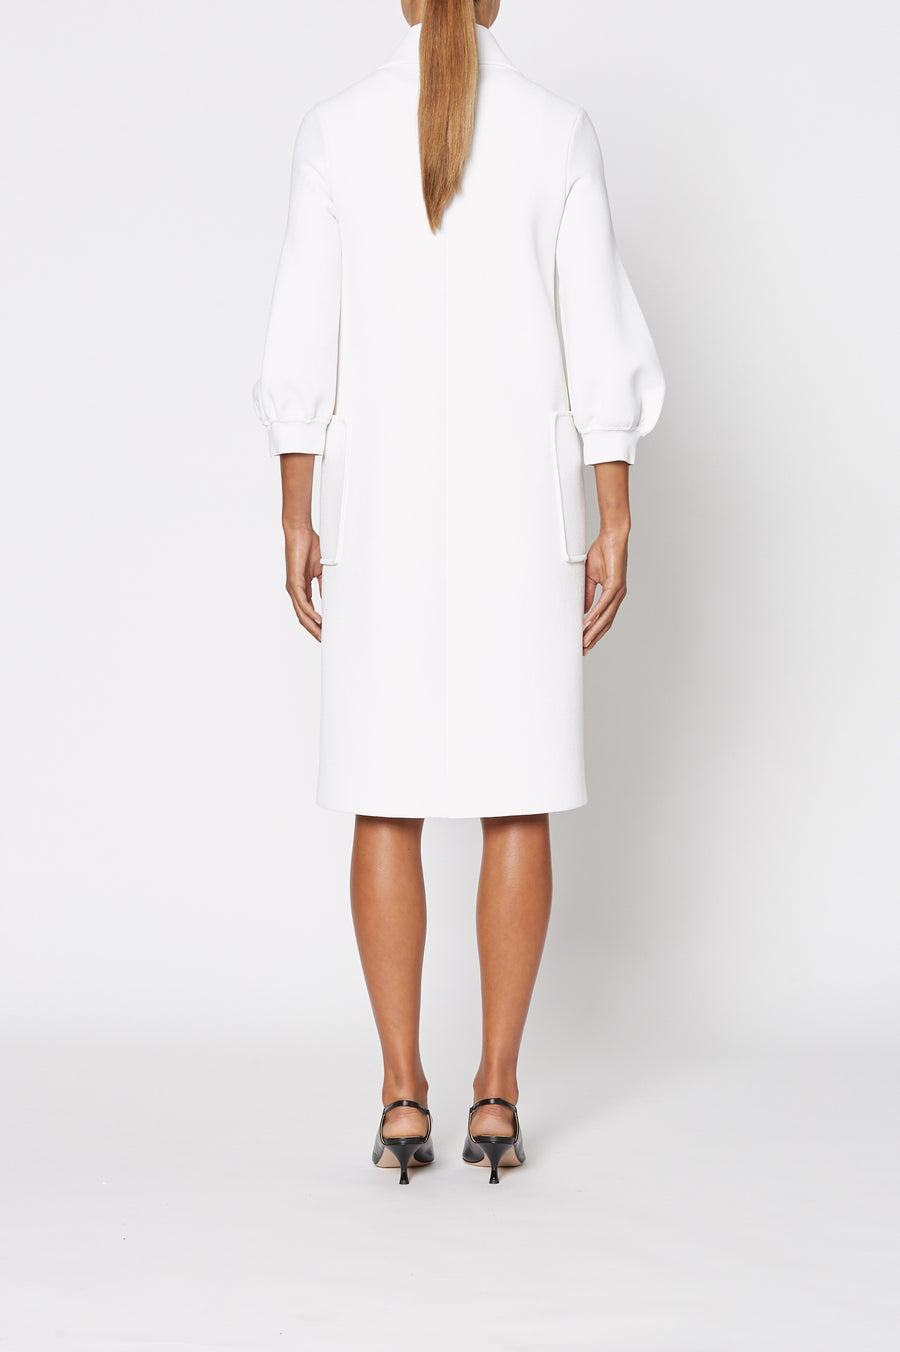 Crepe Knit Cocoon Sleeve Coat, tailored, zip down front,  cocoon sleeves and patch pockets. Color White